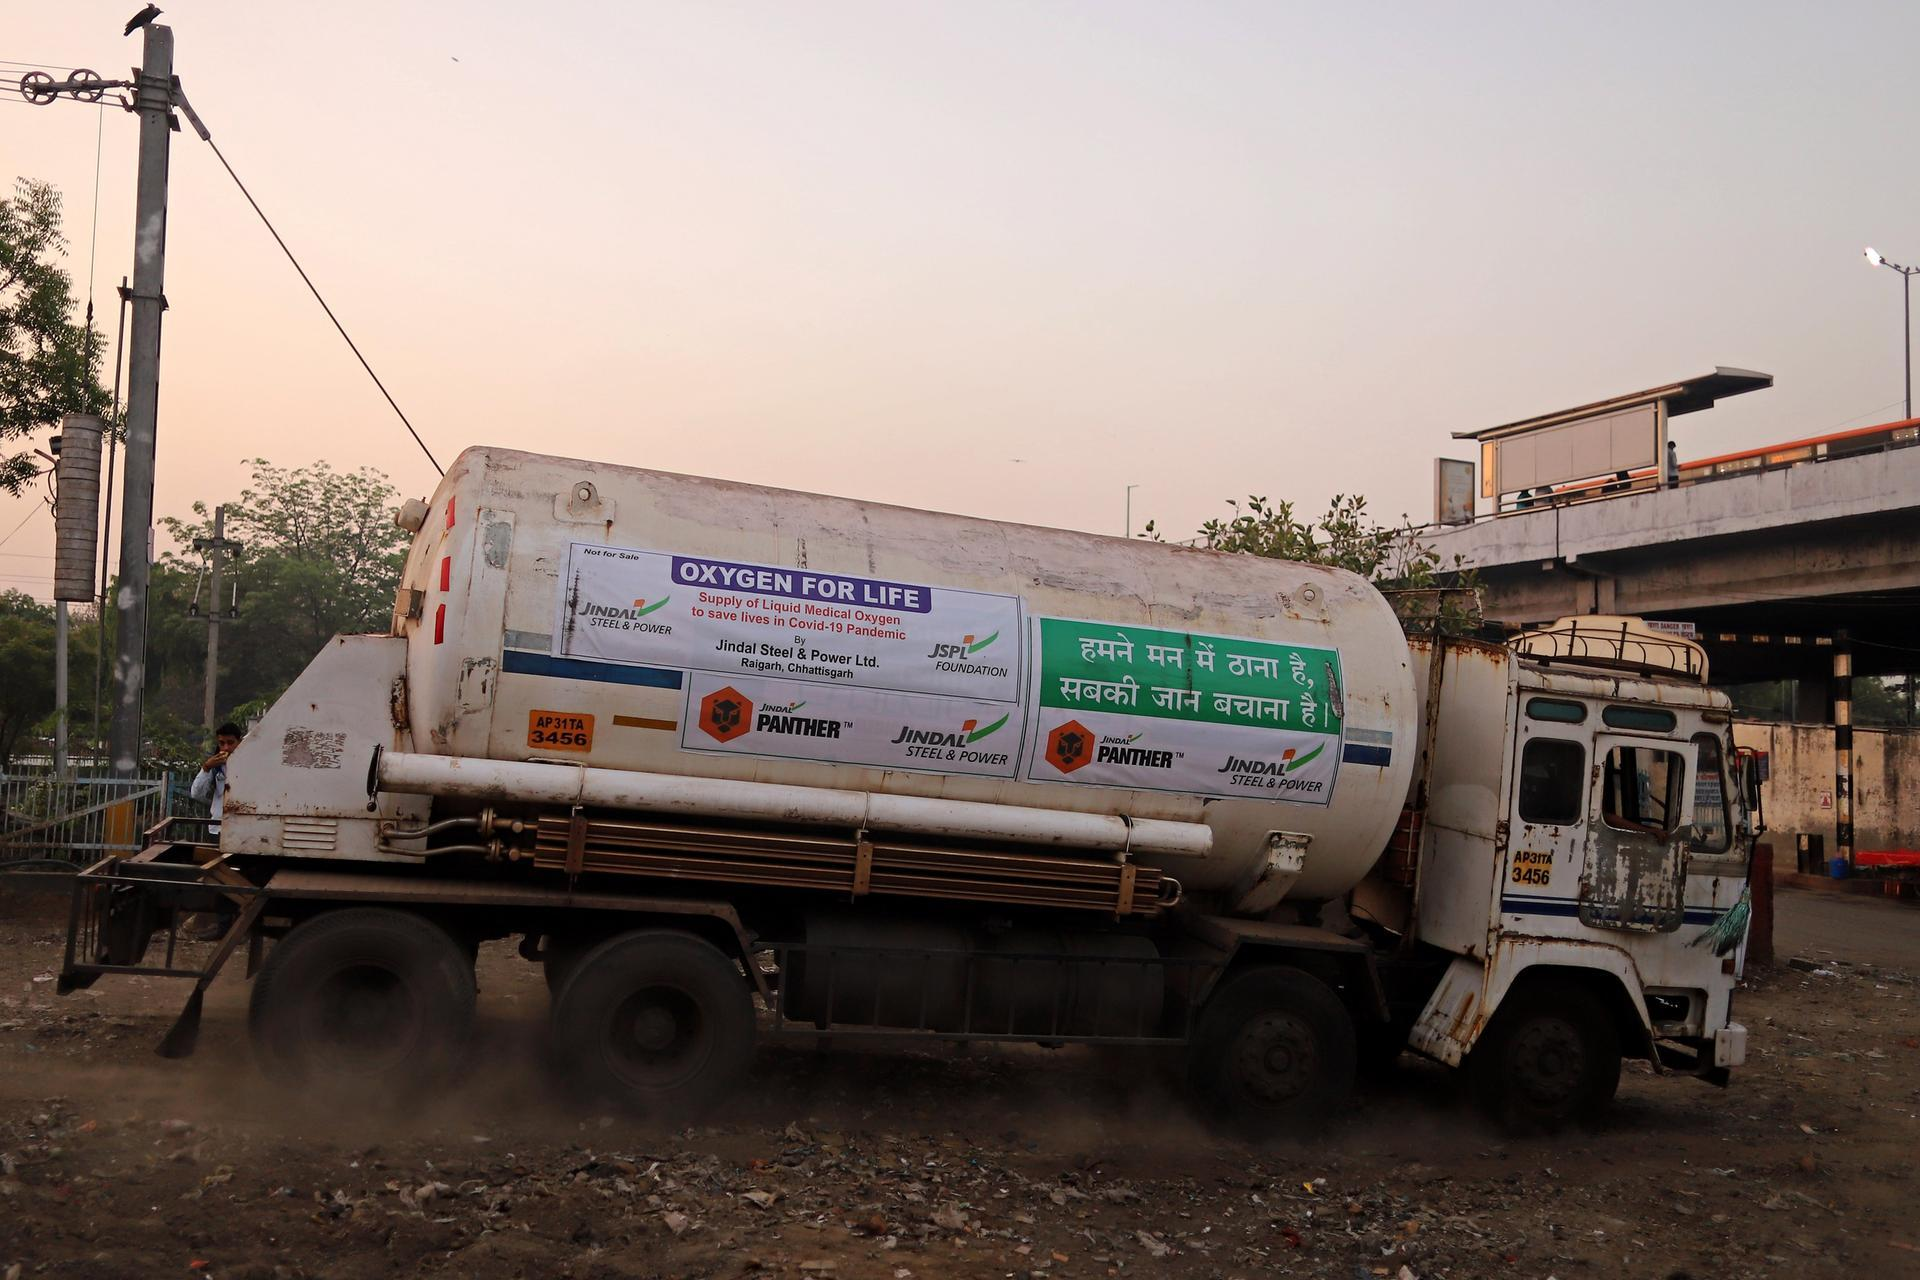 A tanker arrives in Delhi after being transported by rail. Bloomberg